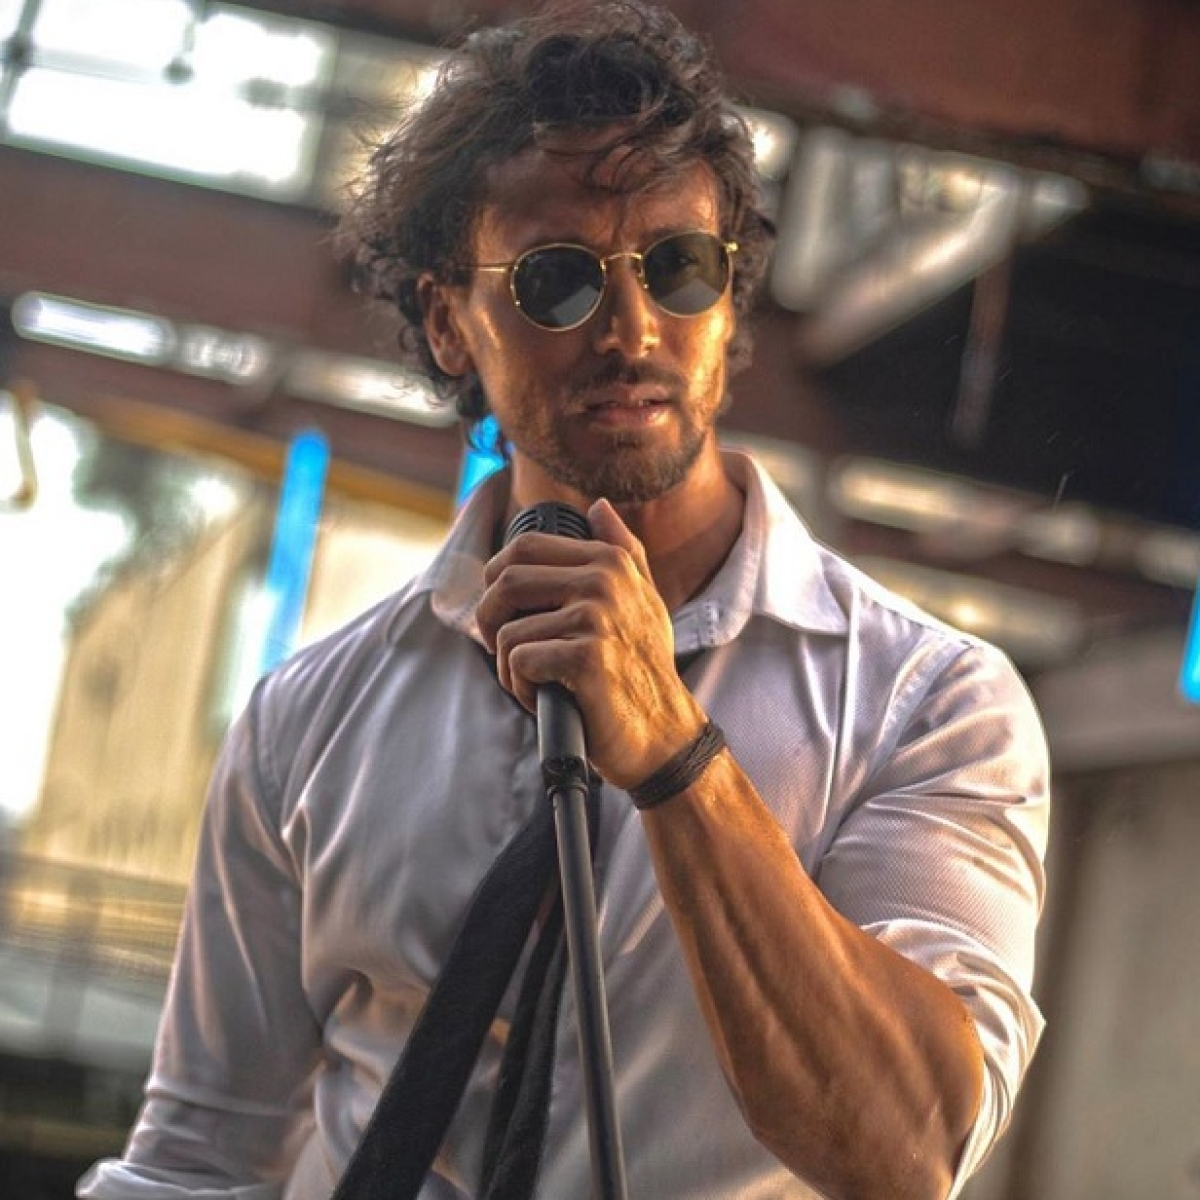 Feels great to be rewarded: Tiger Shroff on response he received for debut single 'Unbelievable'